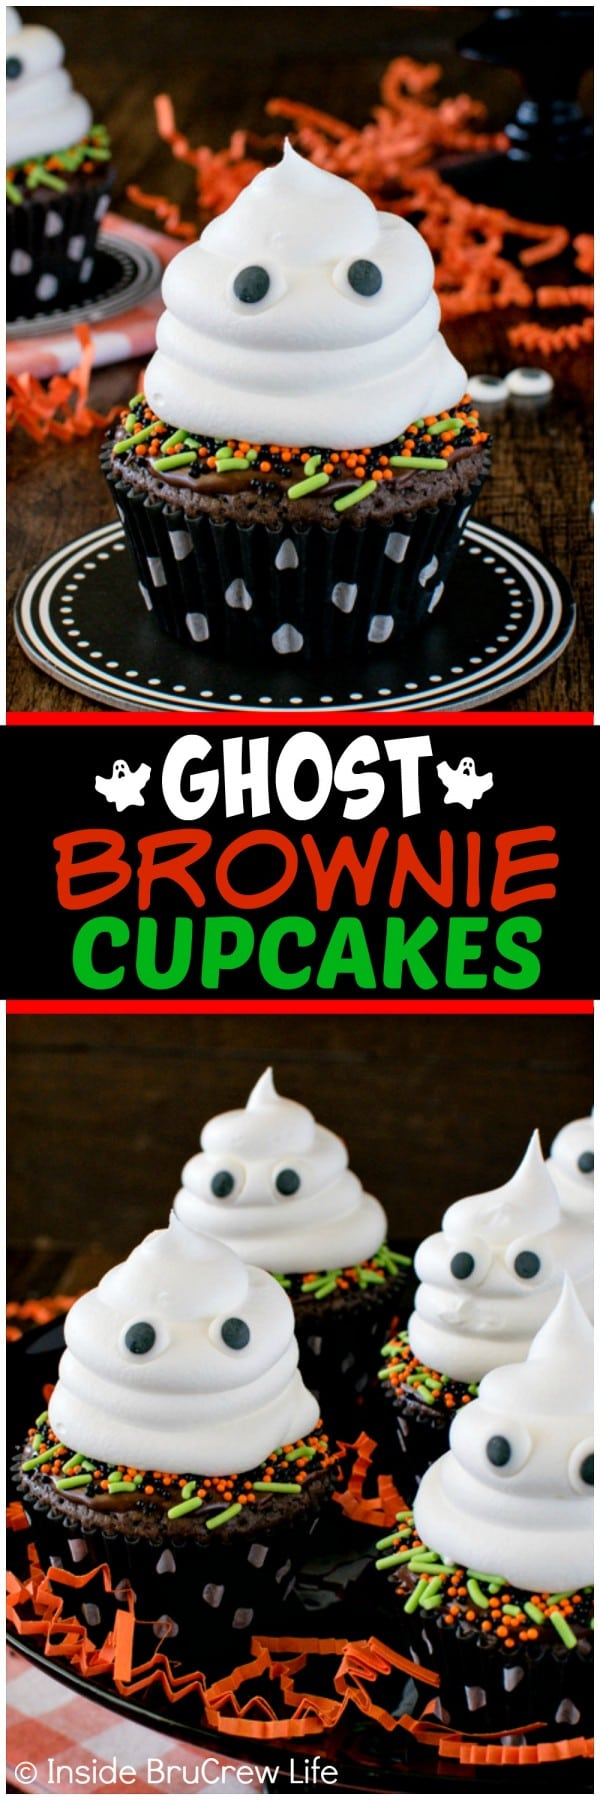 Ghost Brownie Cupcakes - chocolate, sprinkles, and a friendly ghost swirl makes these a fun Halloween treat. Easy recipe for parties!